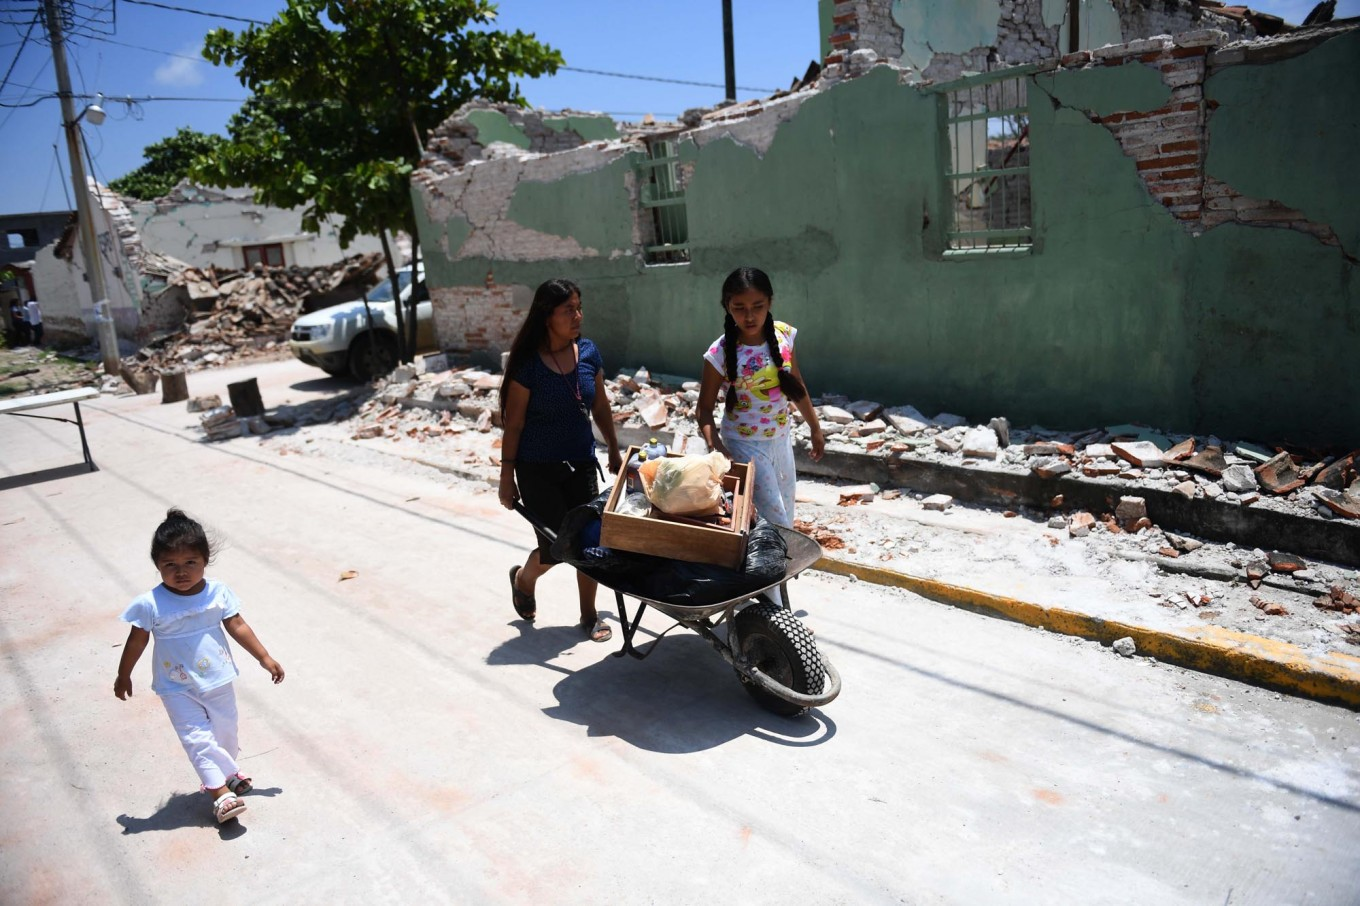 People walk by buildings knocked down by 